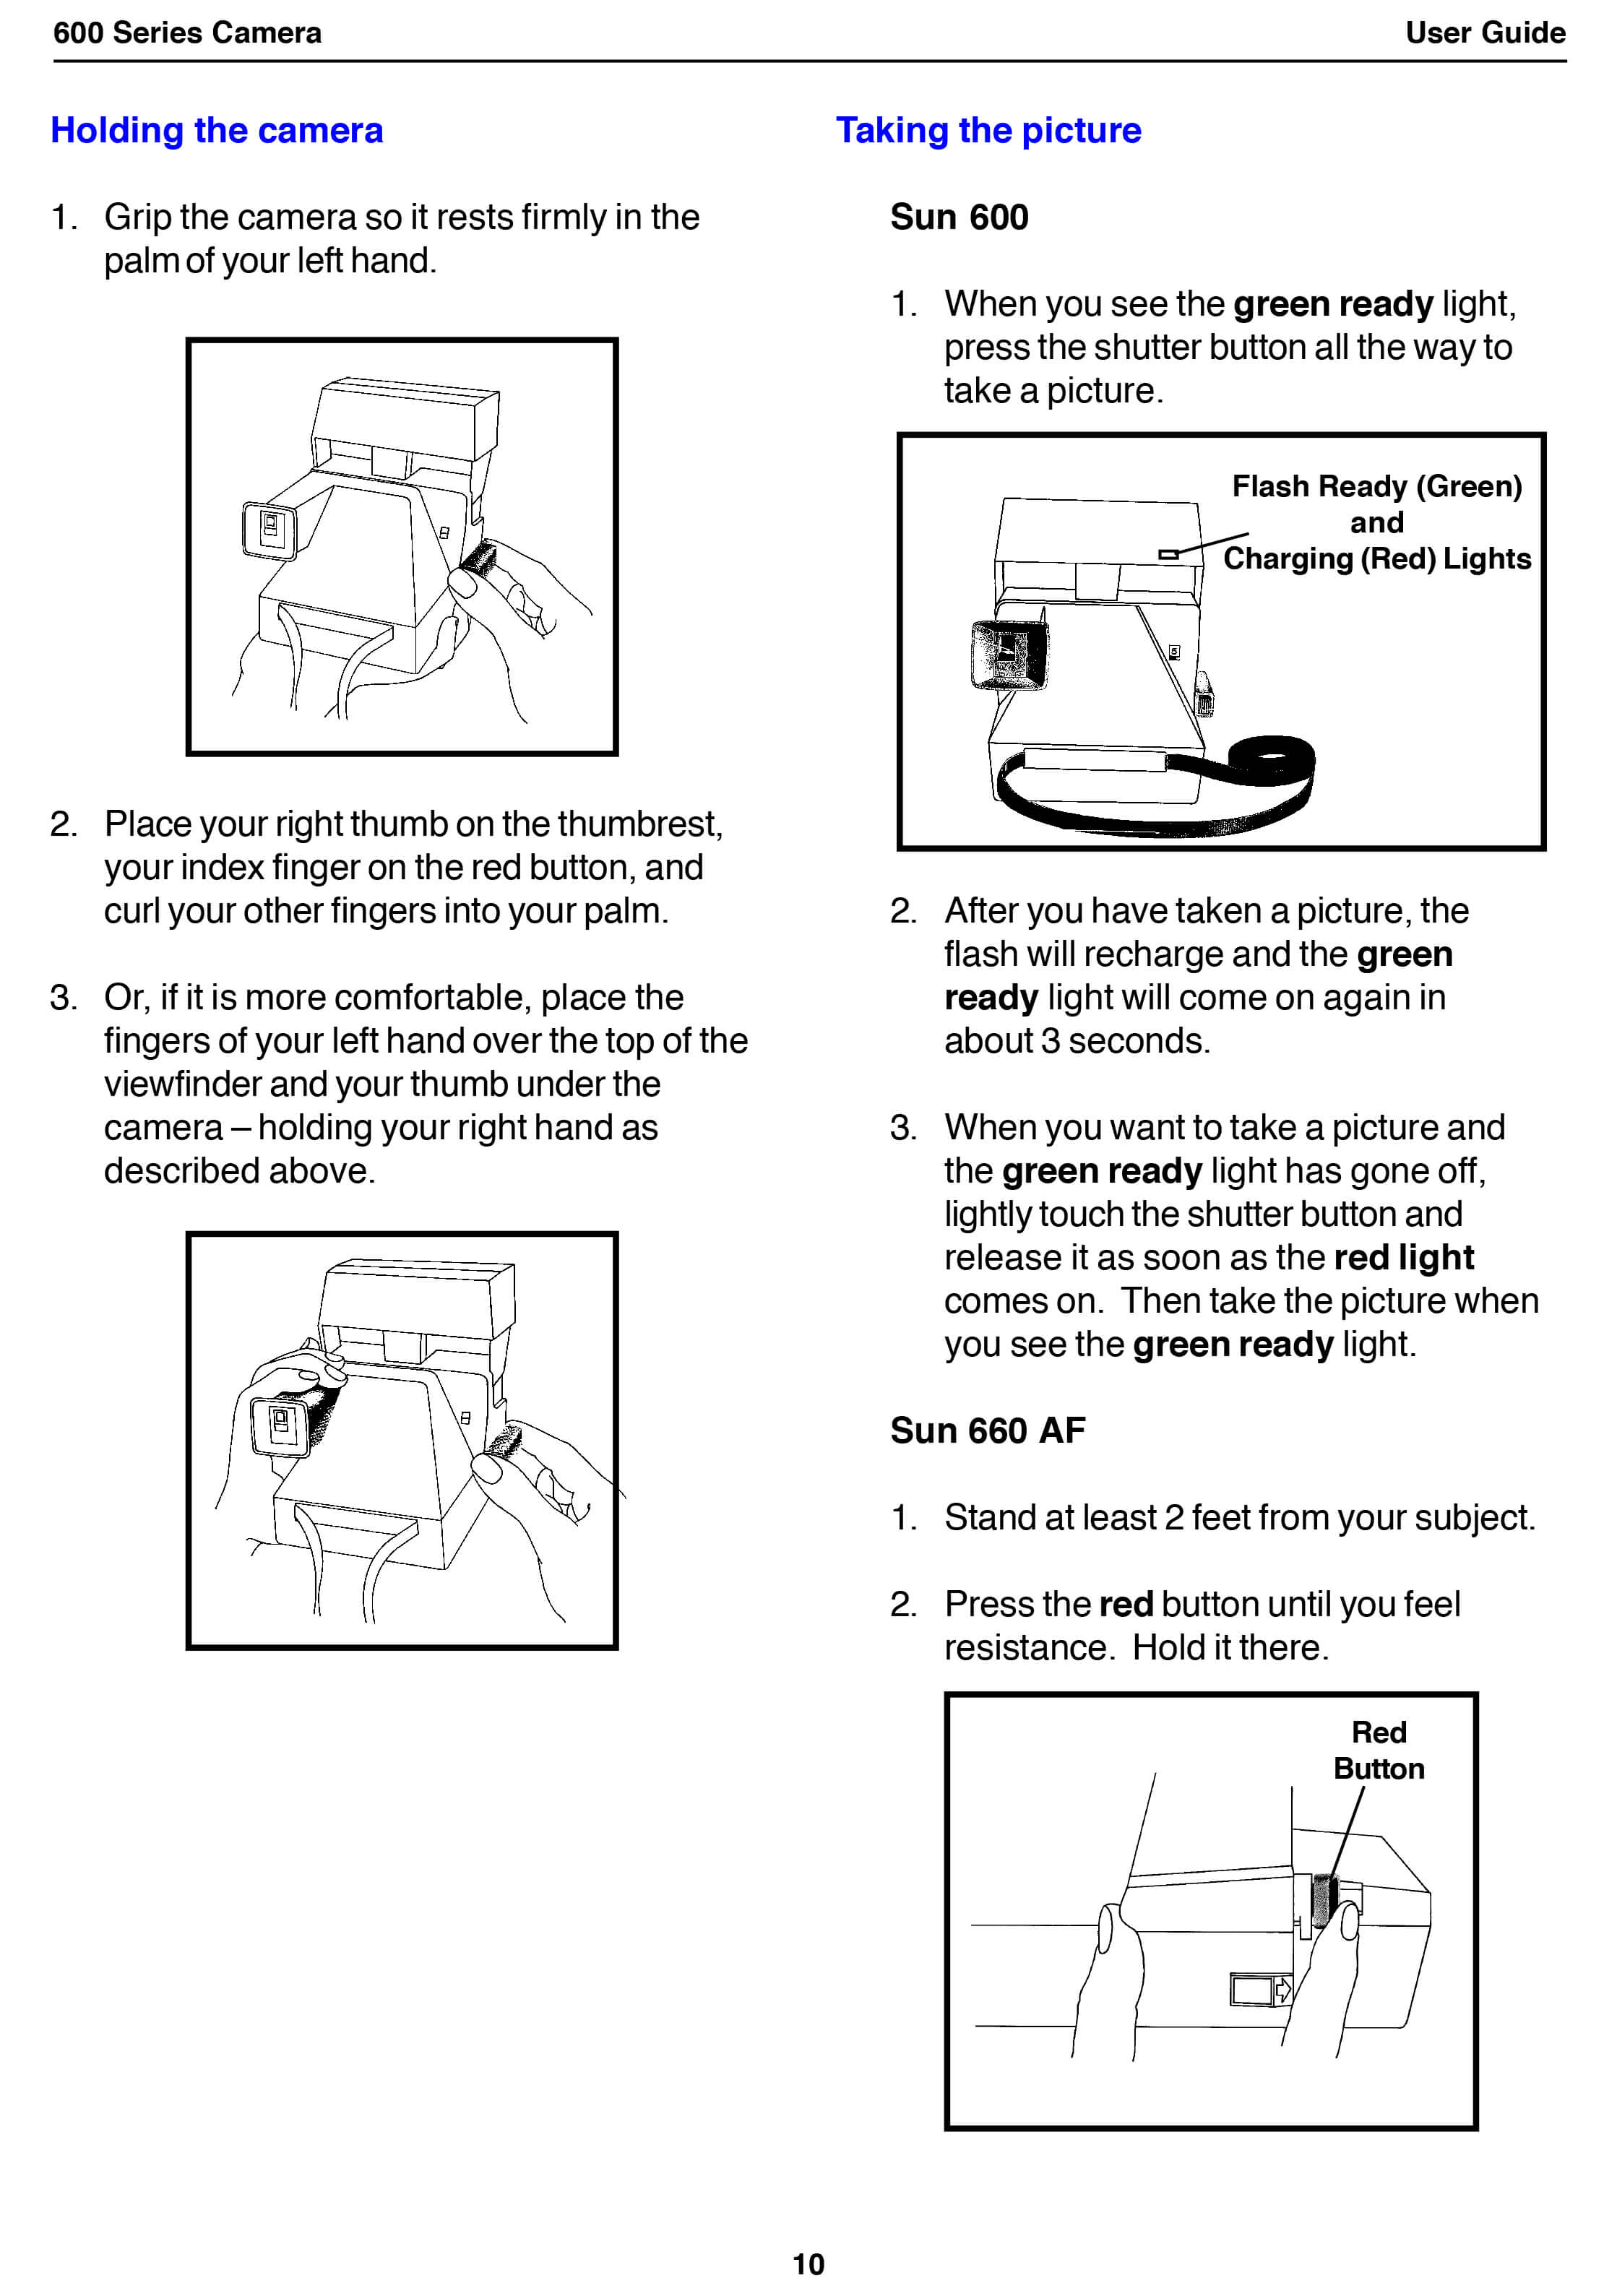 Polaroid 600 Series Camera User Guide Instant University Parallel Diagram